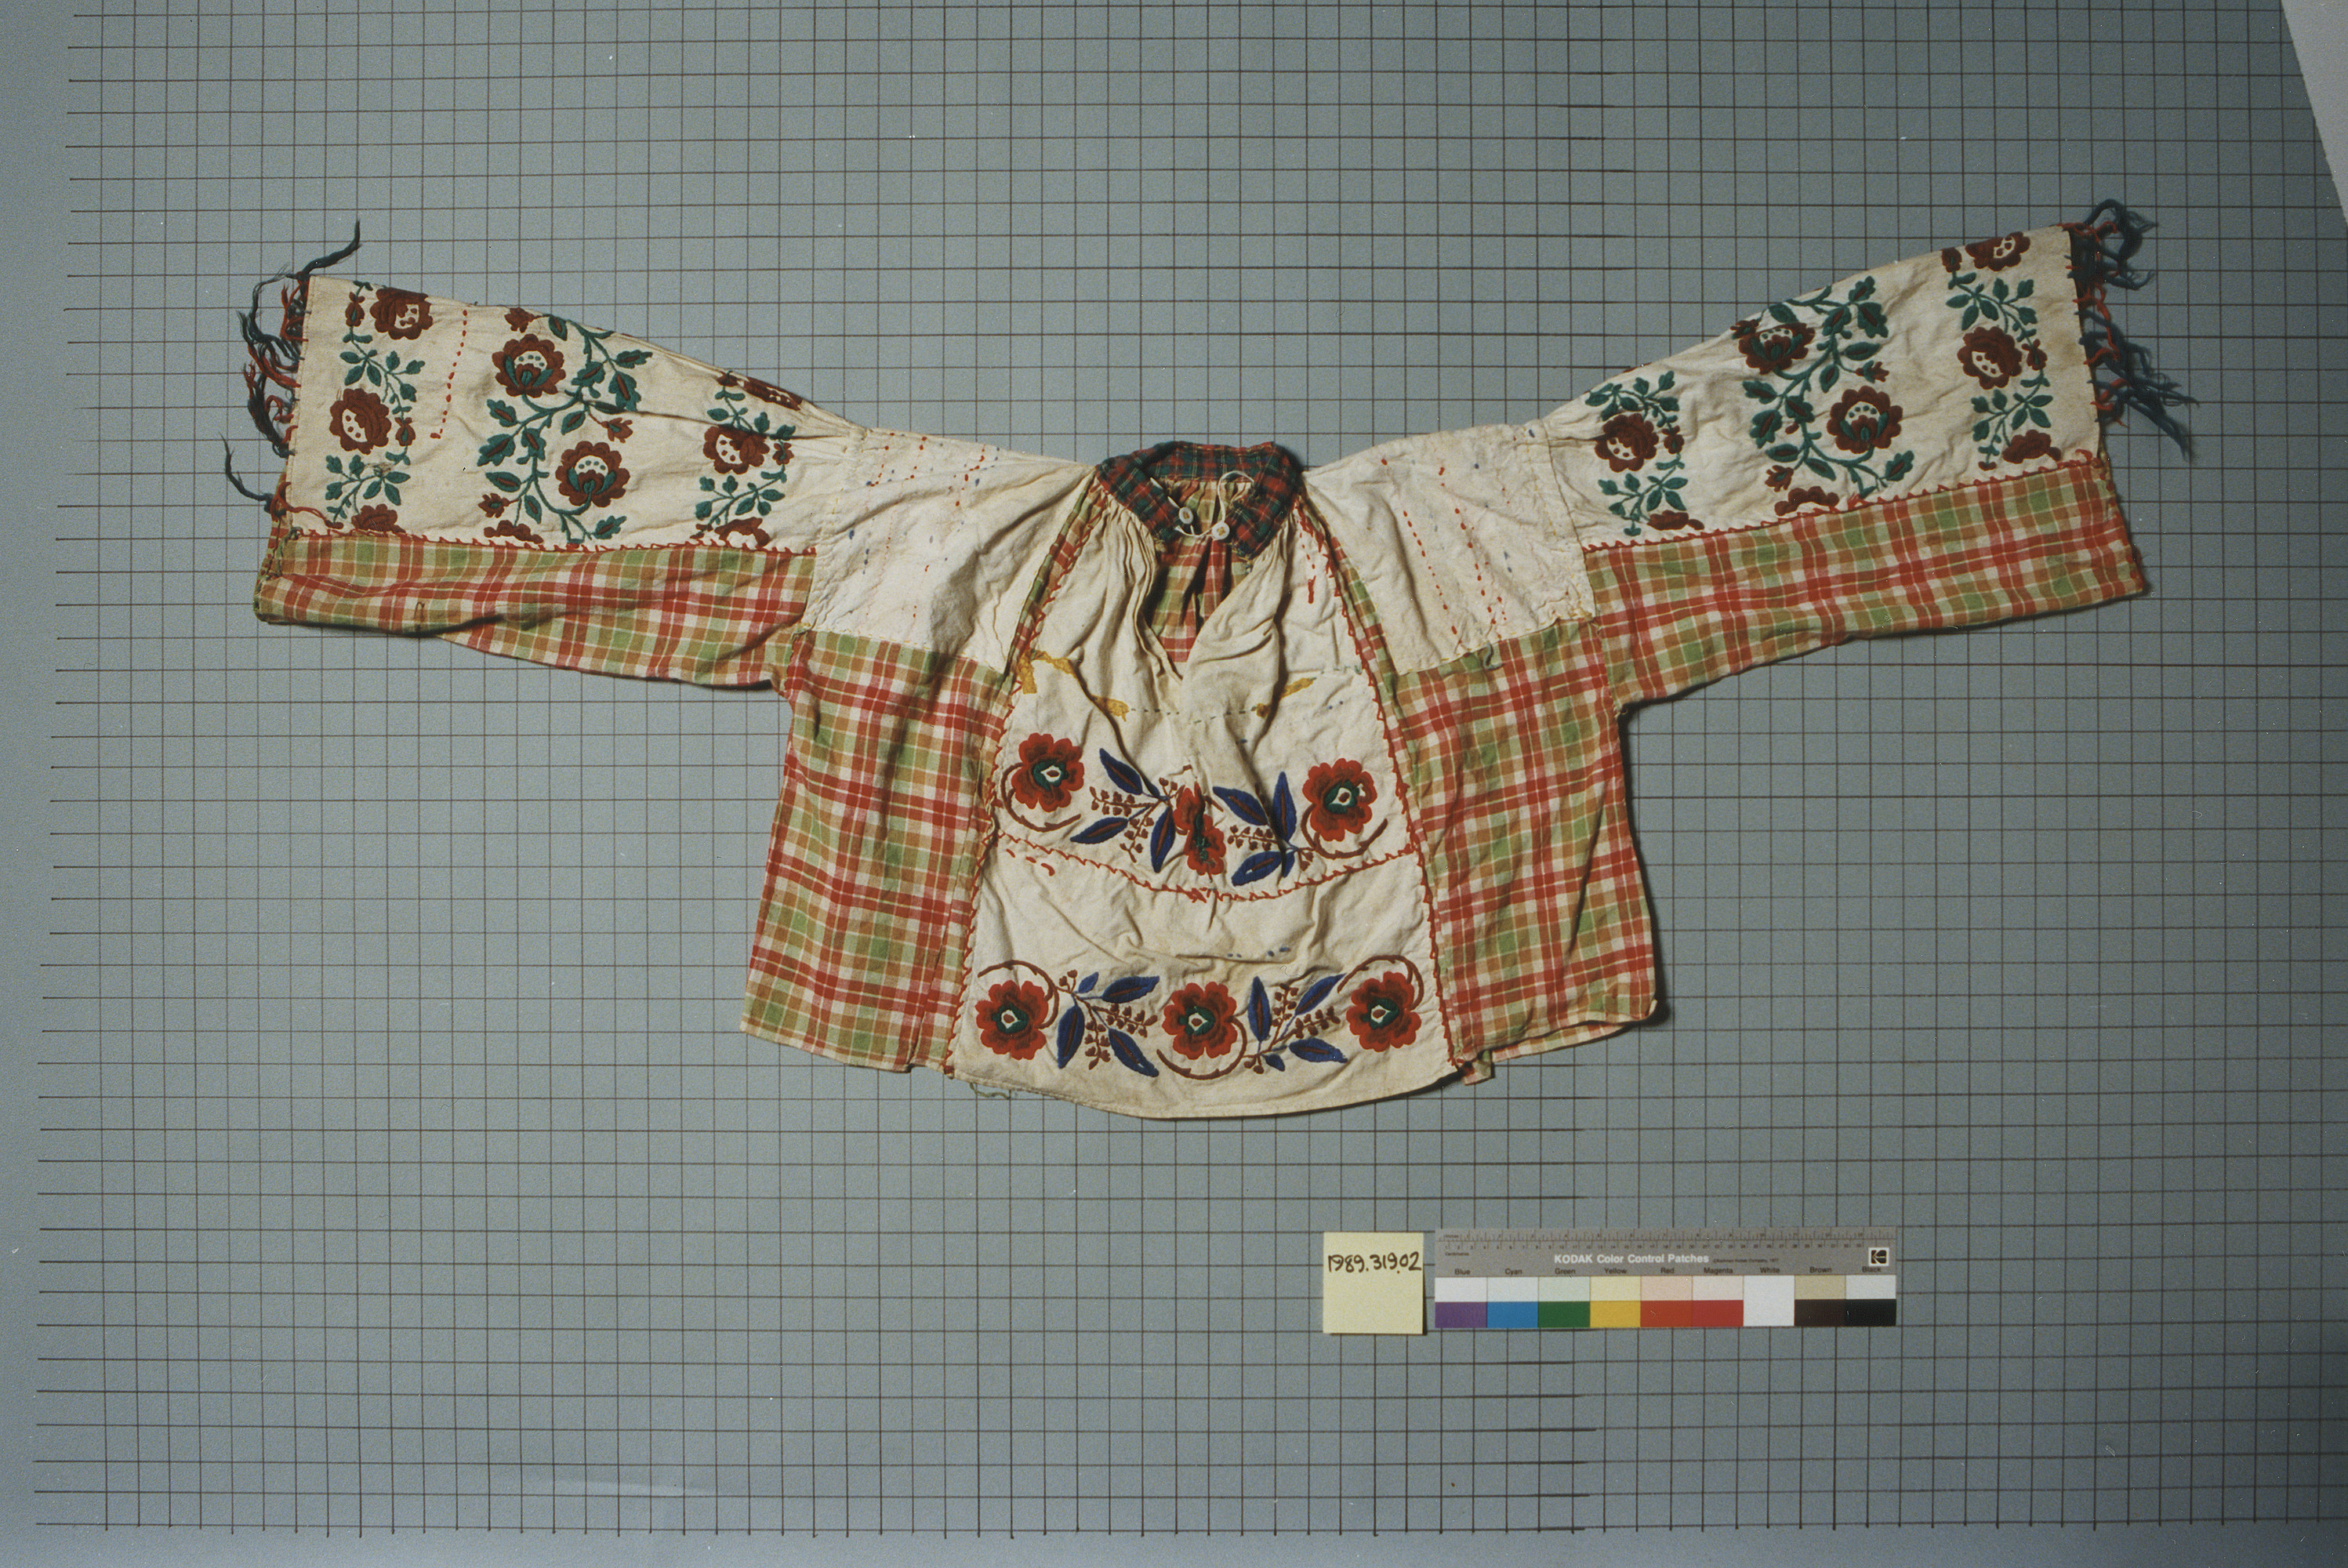 Embroidered shirt worn for special occasions by the donor's father, Gheorge Cioaba, chief of the Calderai, a Romanian Gypsy tribe. The shirt was in his possession during the period 1942-1945.